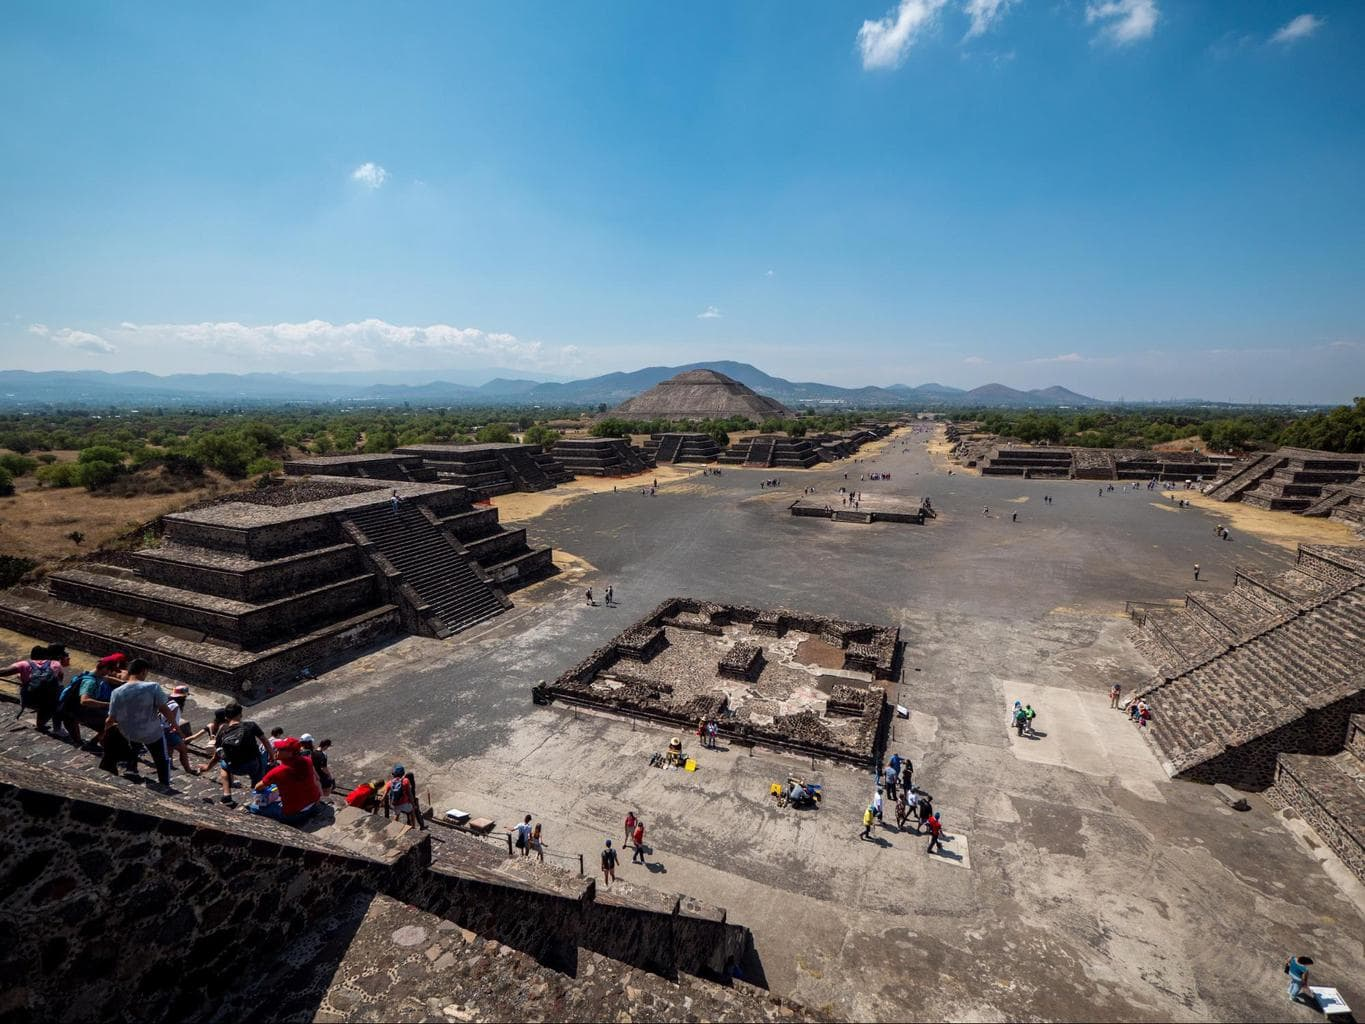 The view from the Pyramid of the Moon of the Pyramid of the Sun